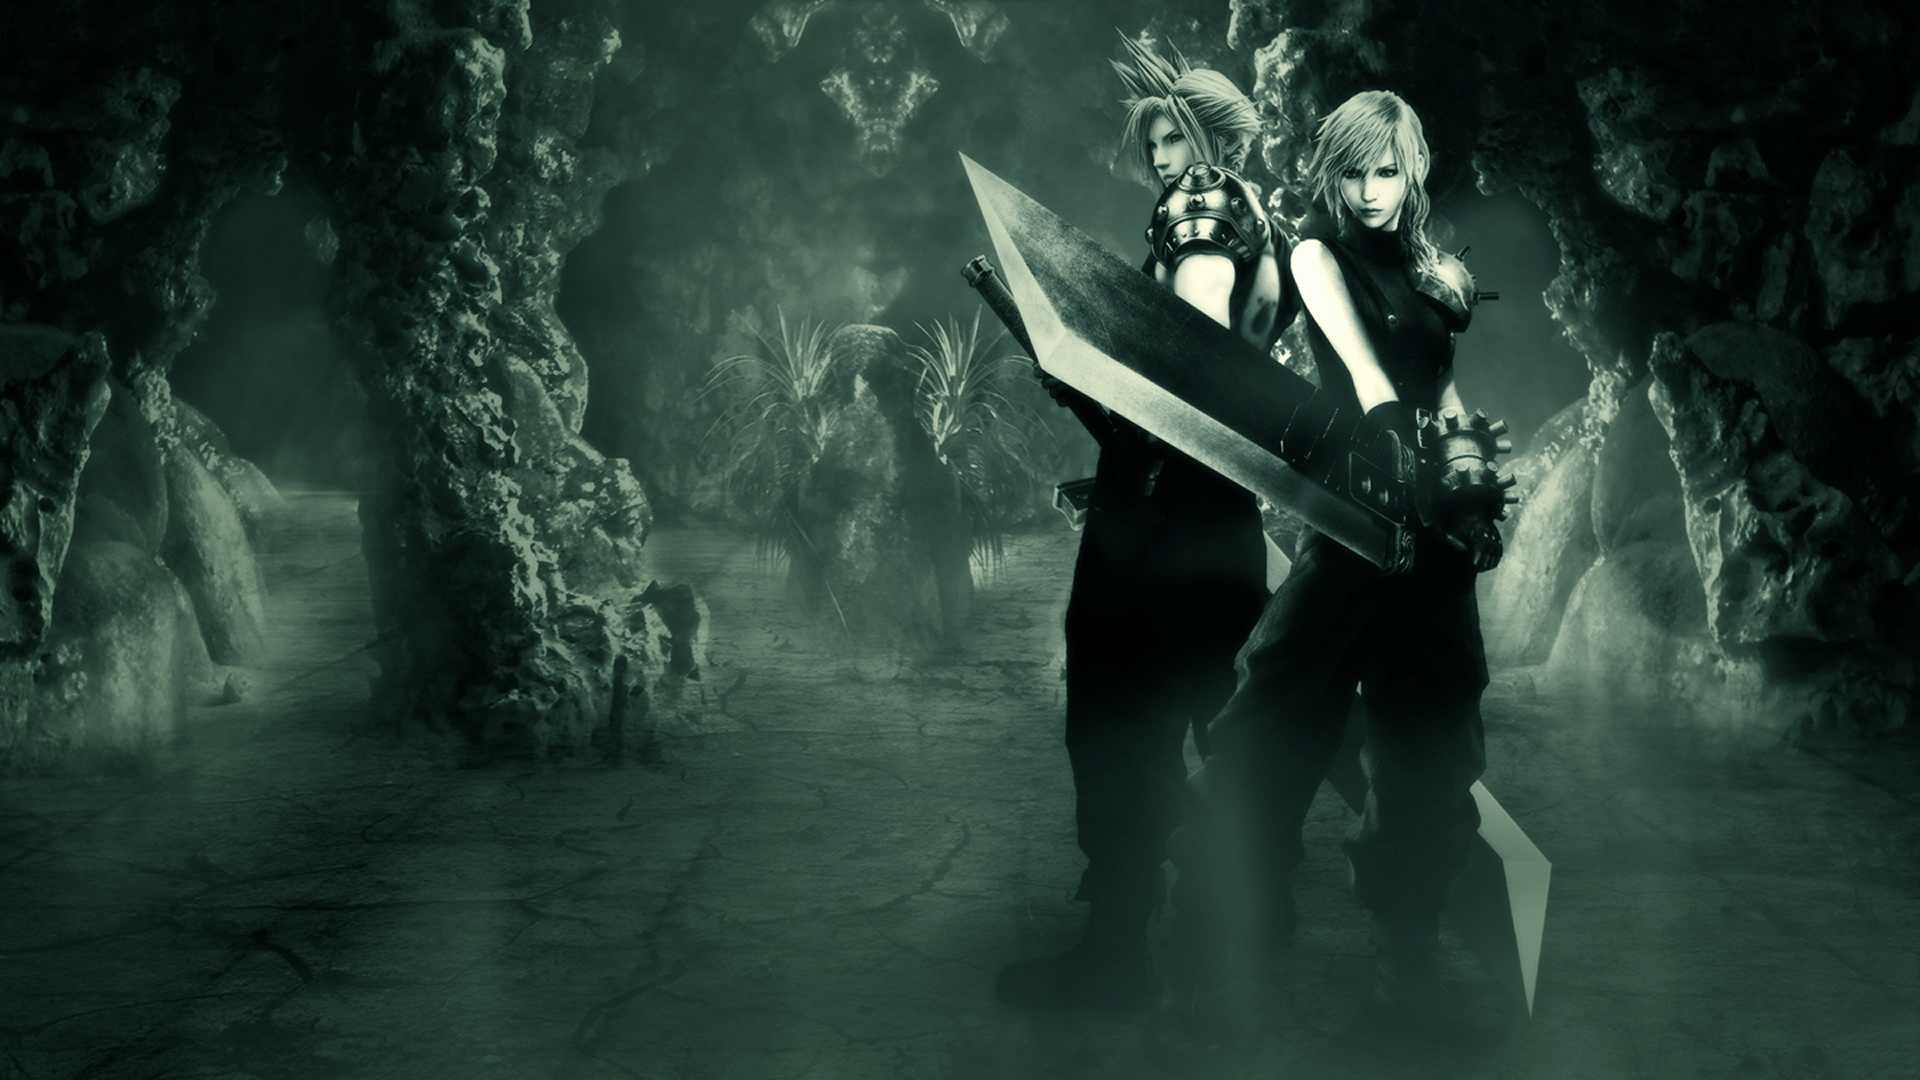 Final Fantasy Wallpaper 1920x1080 209232 Wallpaperup